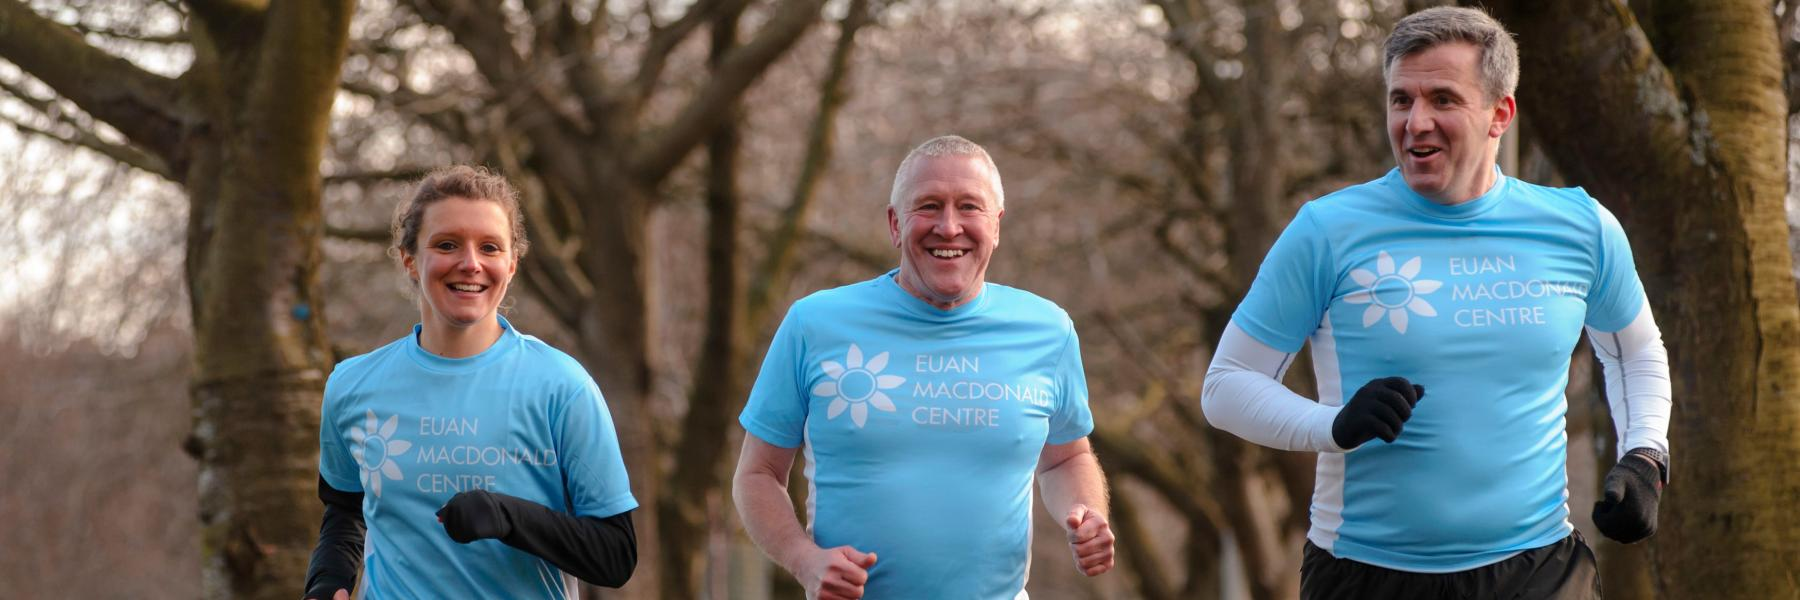 3 people running and smiling in Euan MacDonald Centre T-shirts